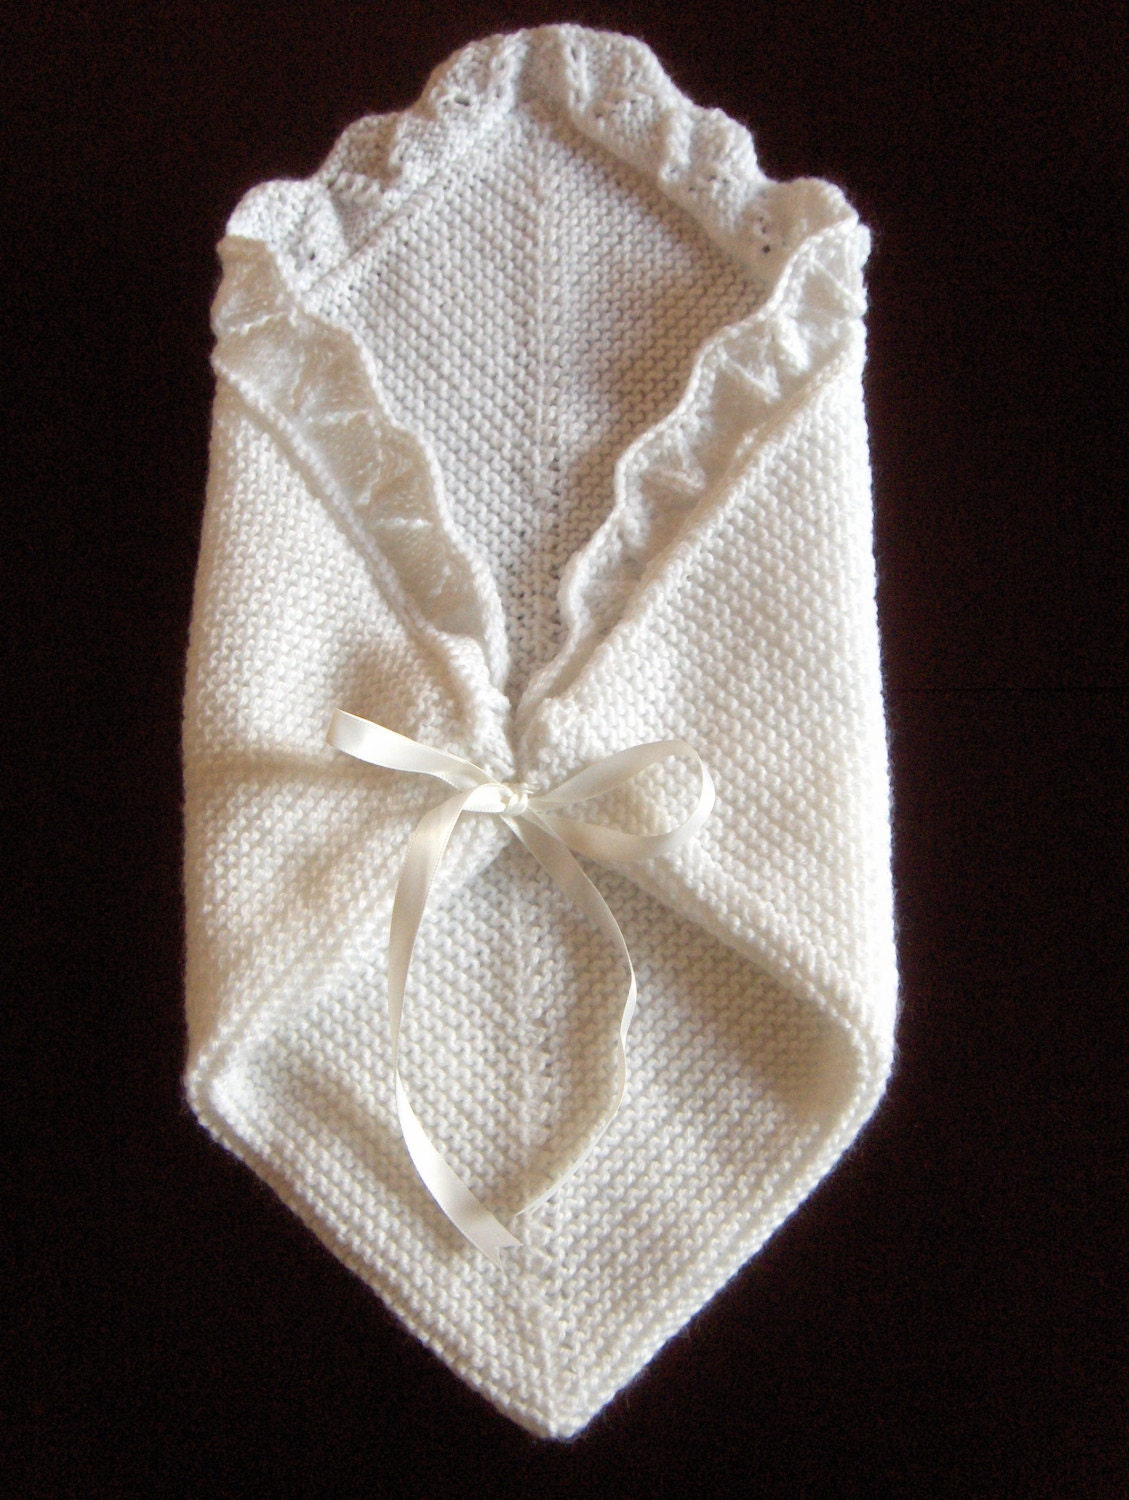 Premature Small Baby Knitting Pattern For Cuddle Blanket/